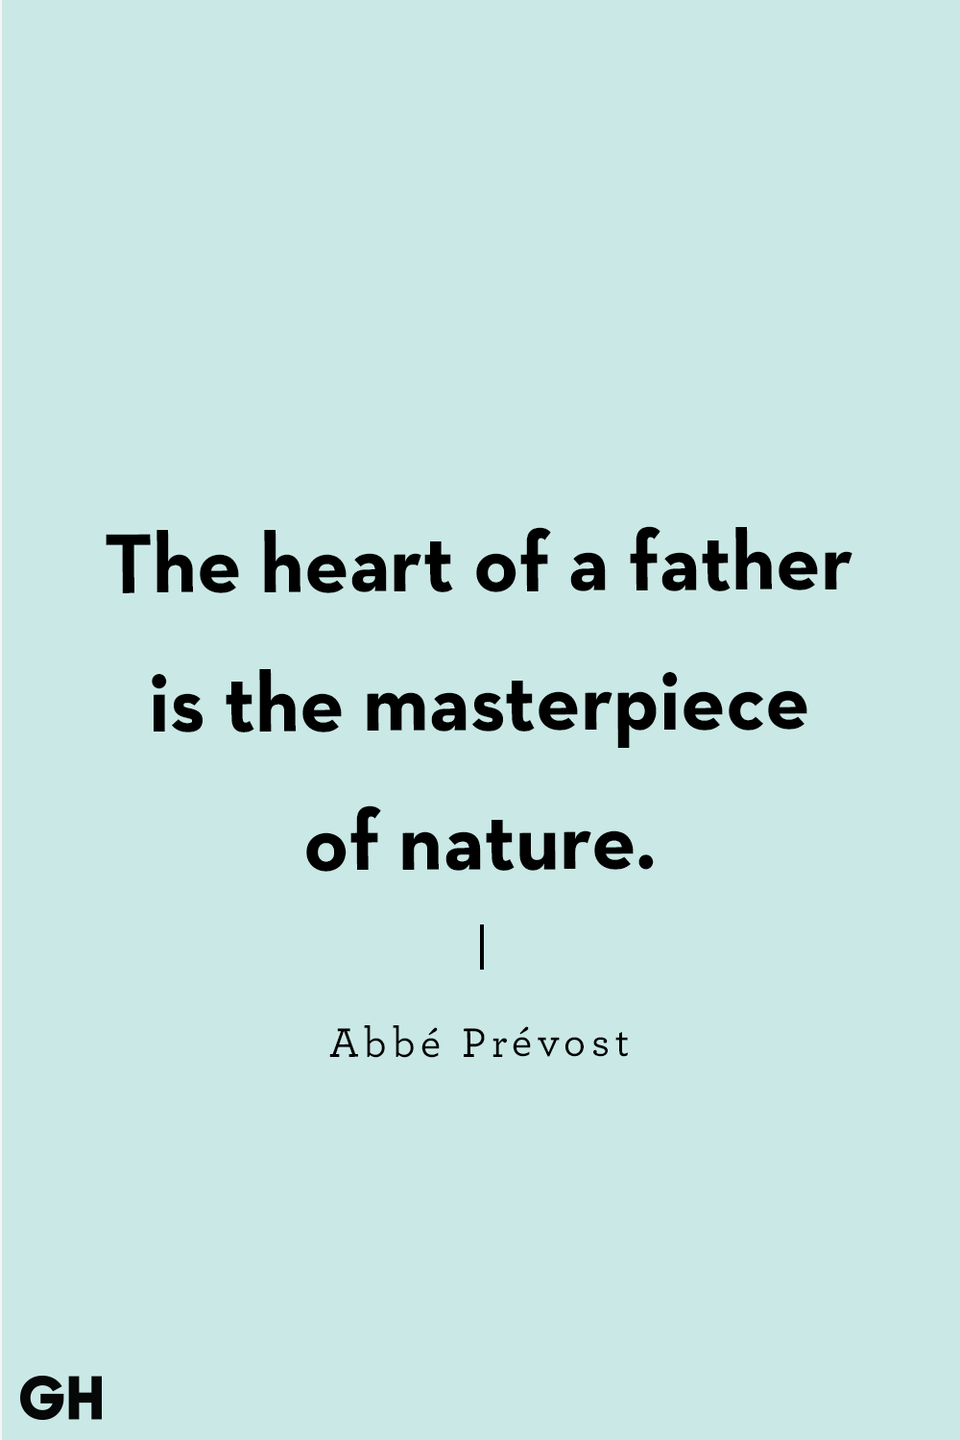 <p>The heart of a father is the masterpiece of nature.</p>